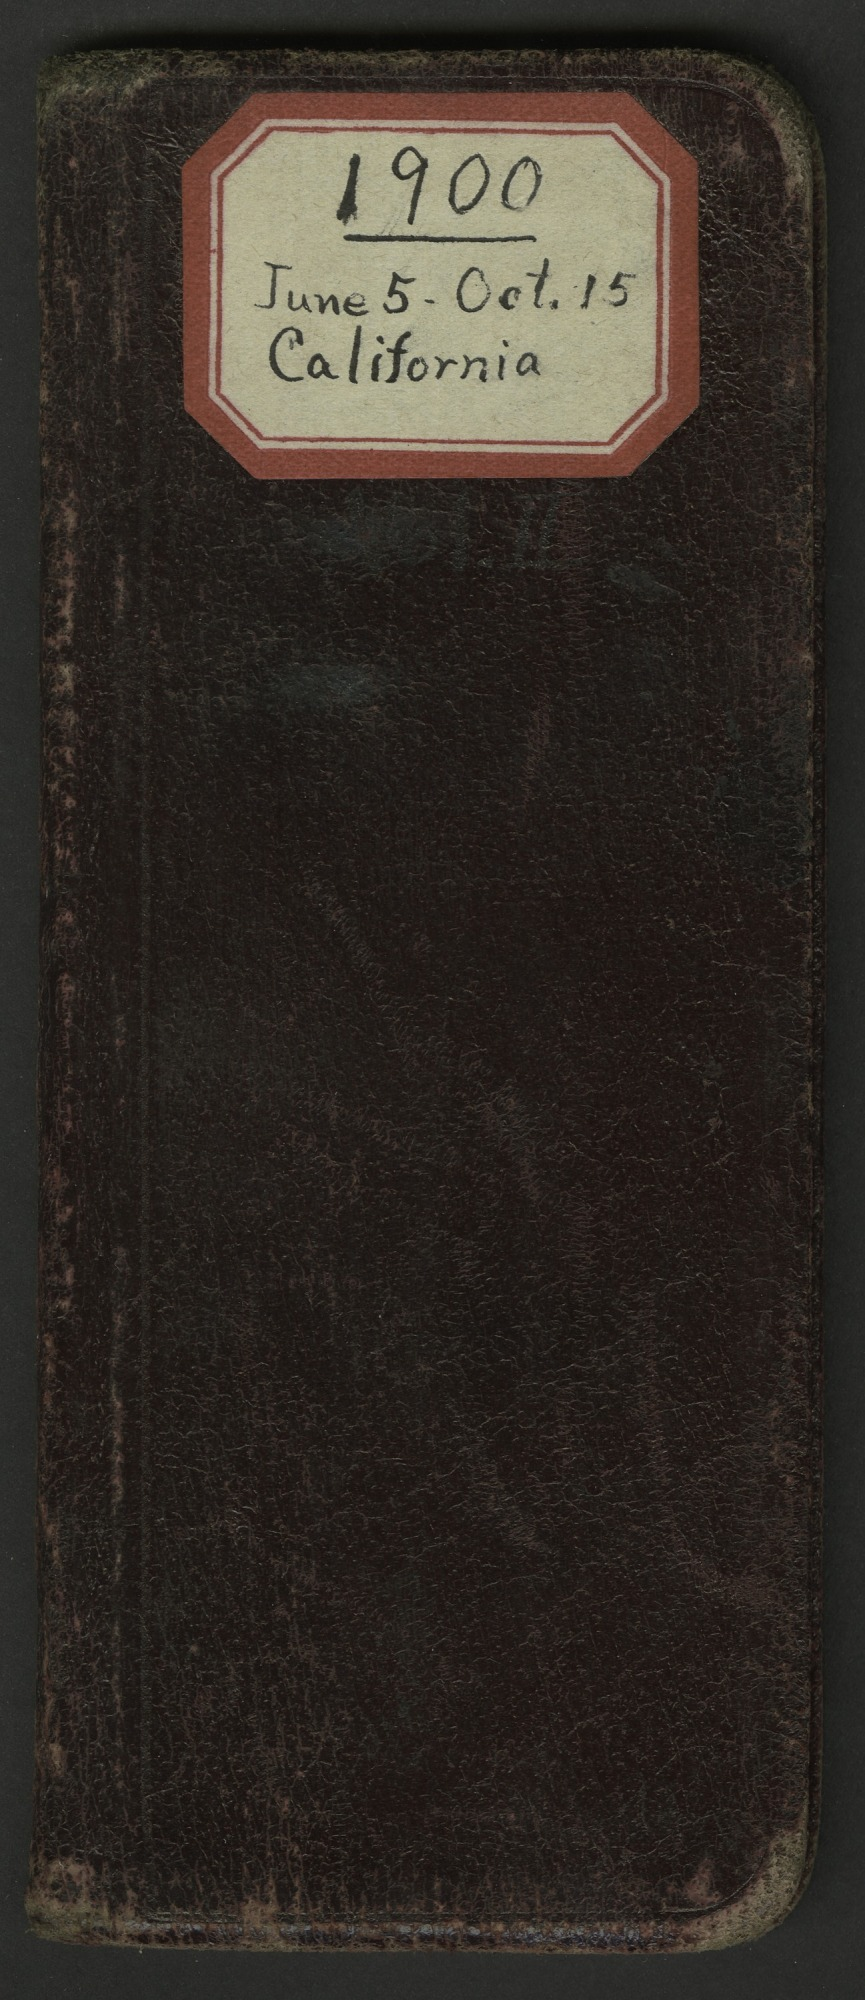 Field notes, Texas and California, June 5-October 15, 1900